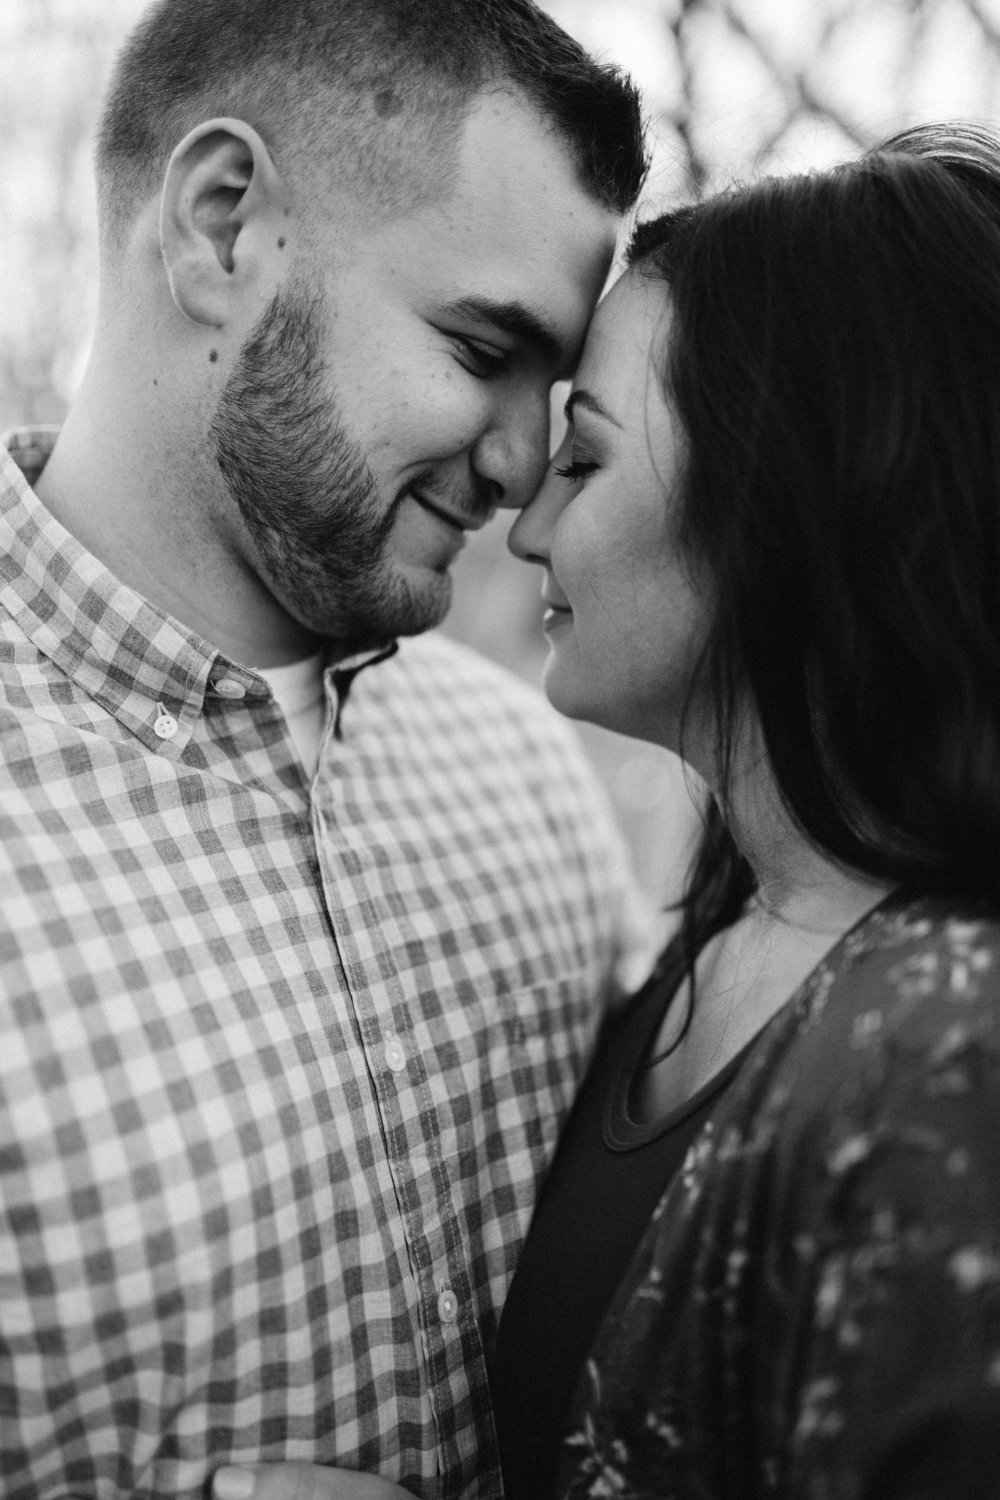 lincoln+ne+engagement+photography+wedding08.jpg